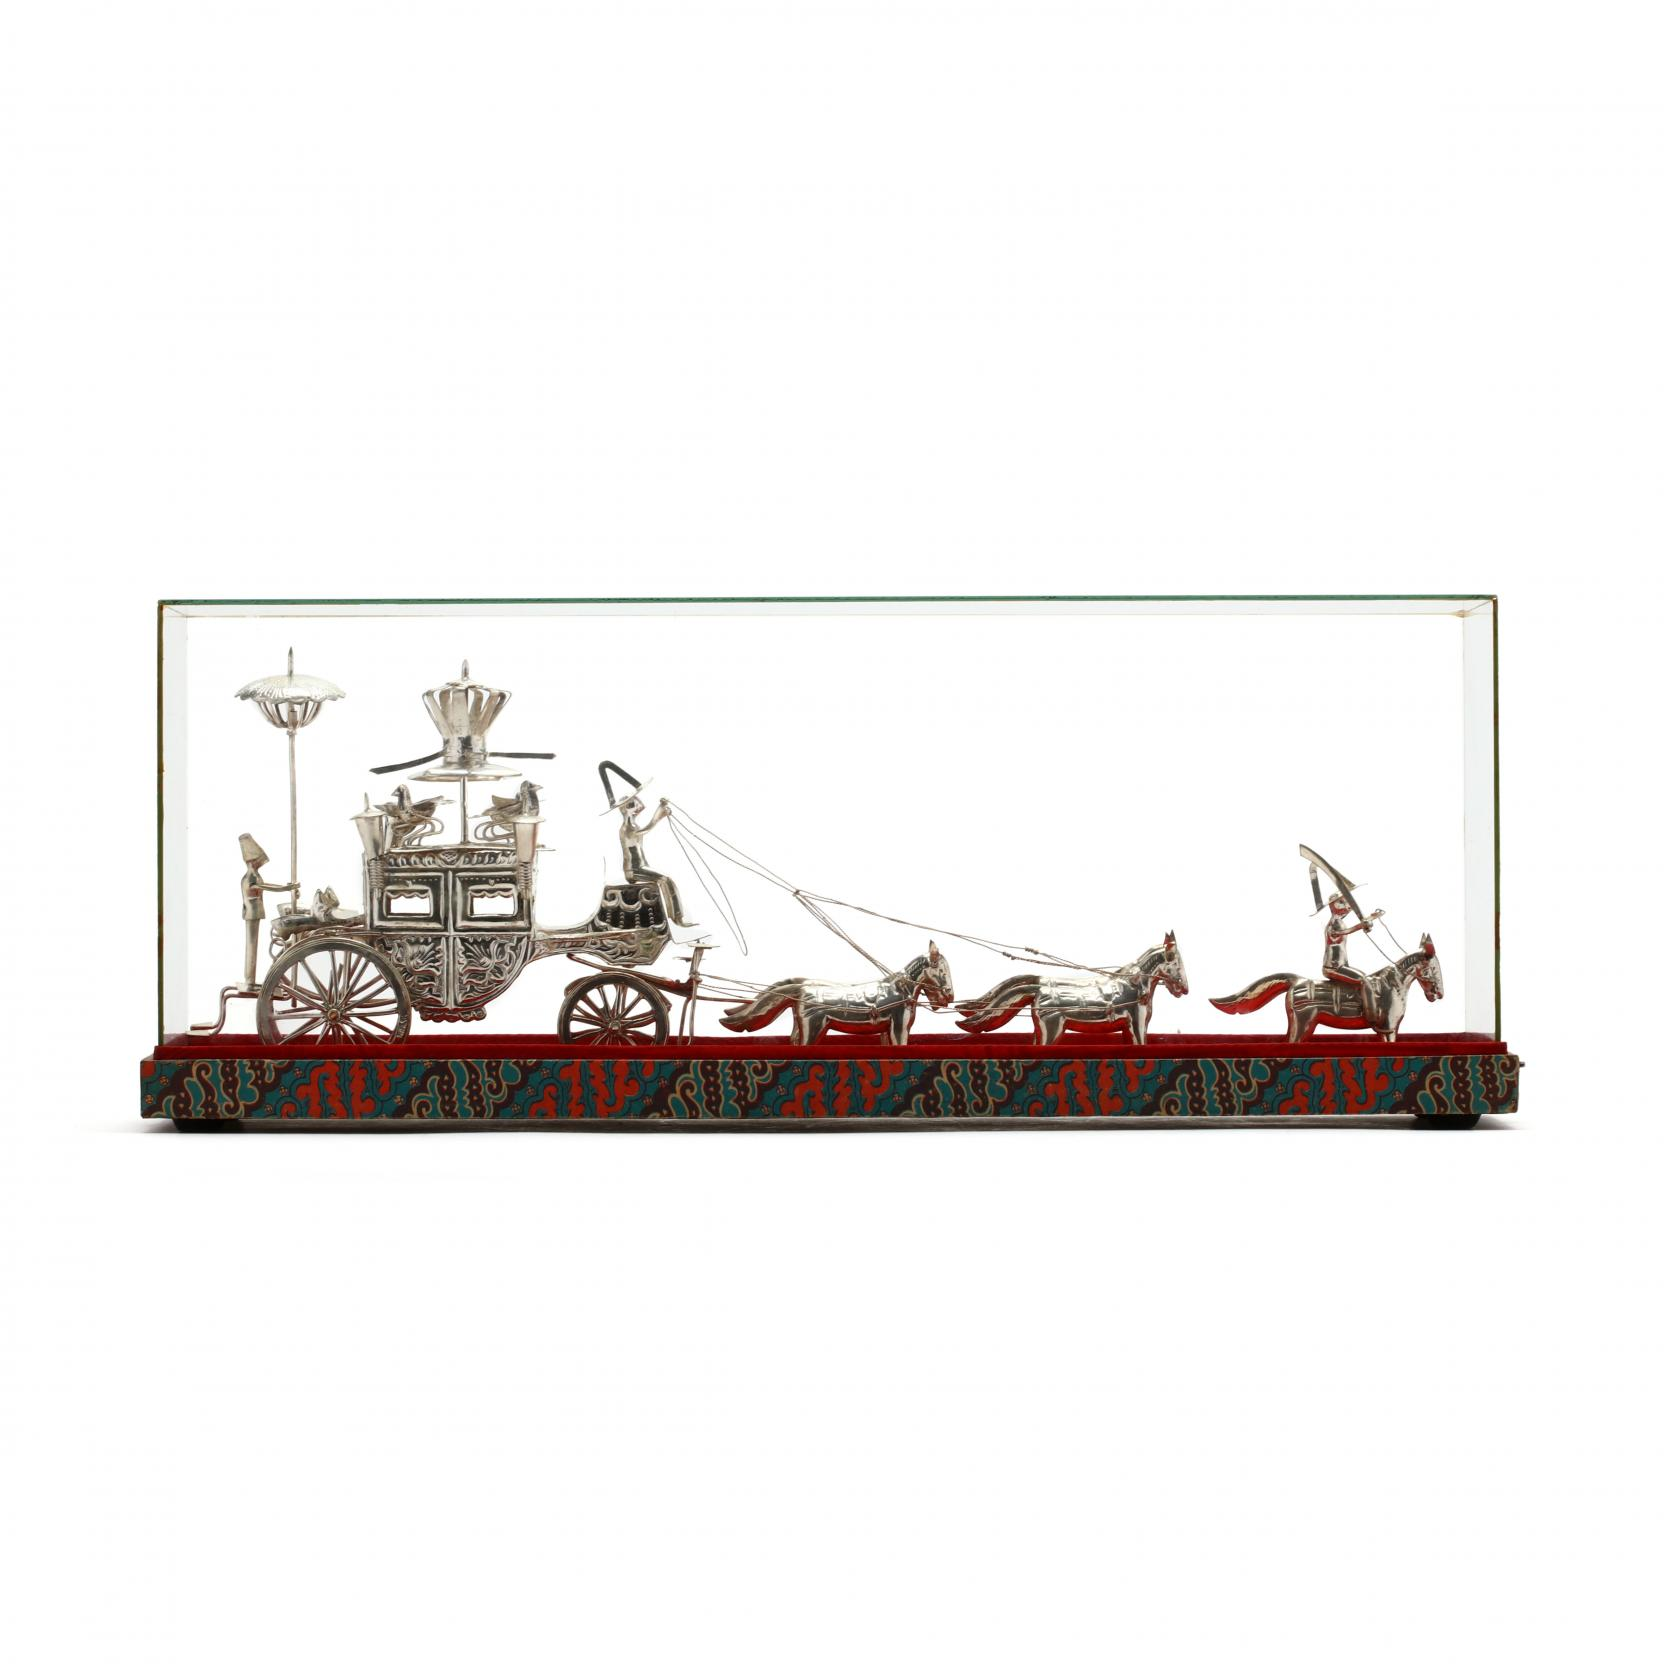 a-vintage-silver-carriage-in-a-glass-presentation-case